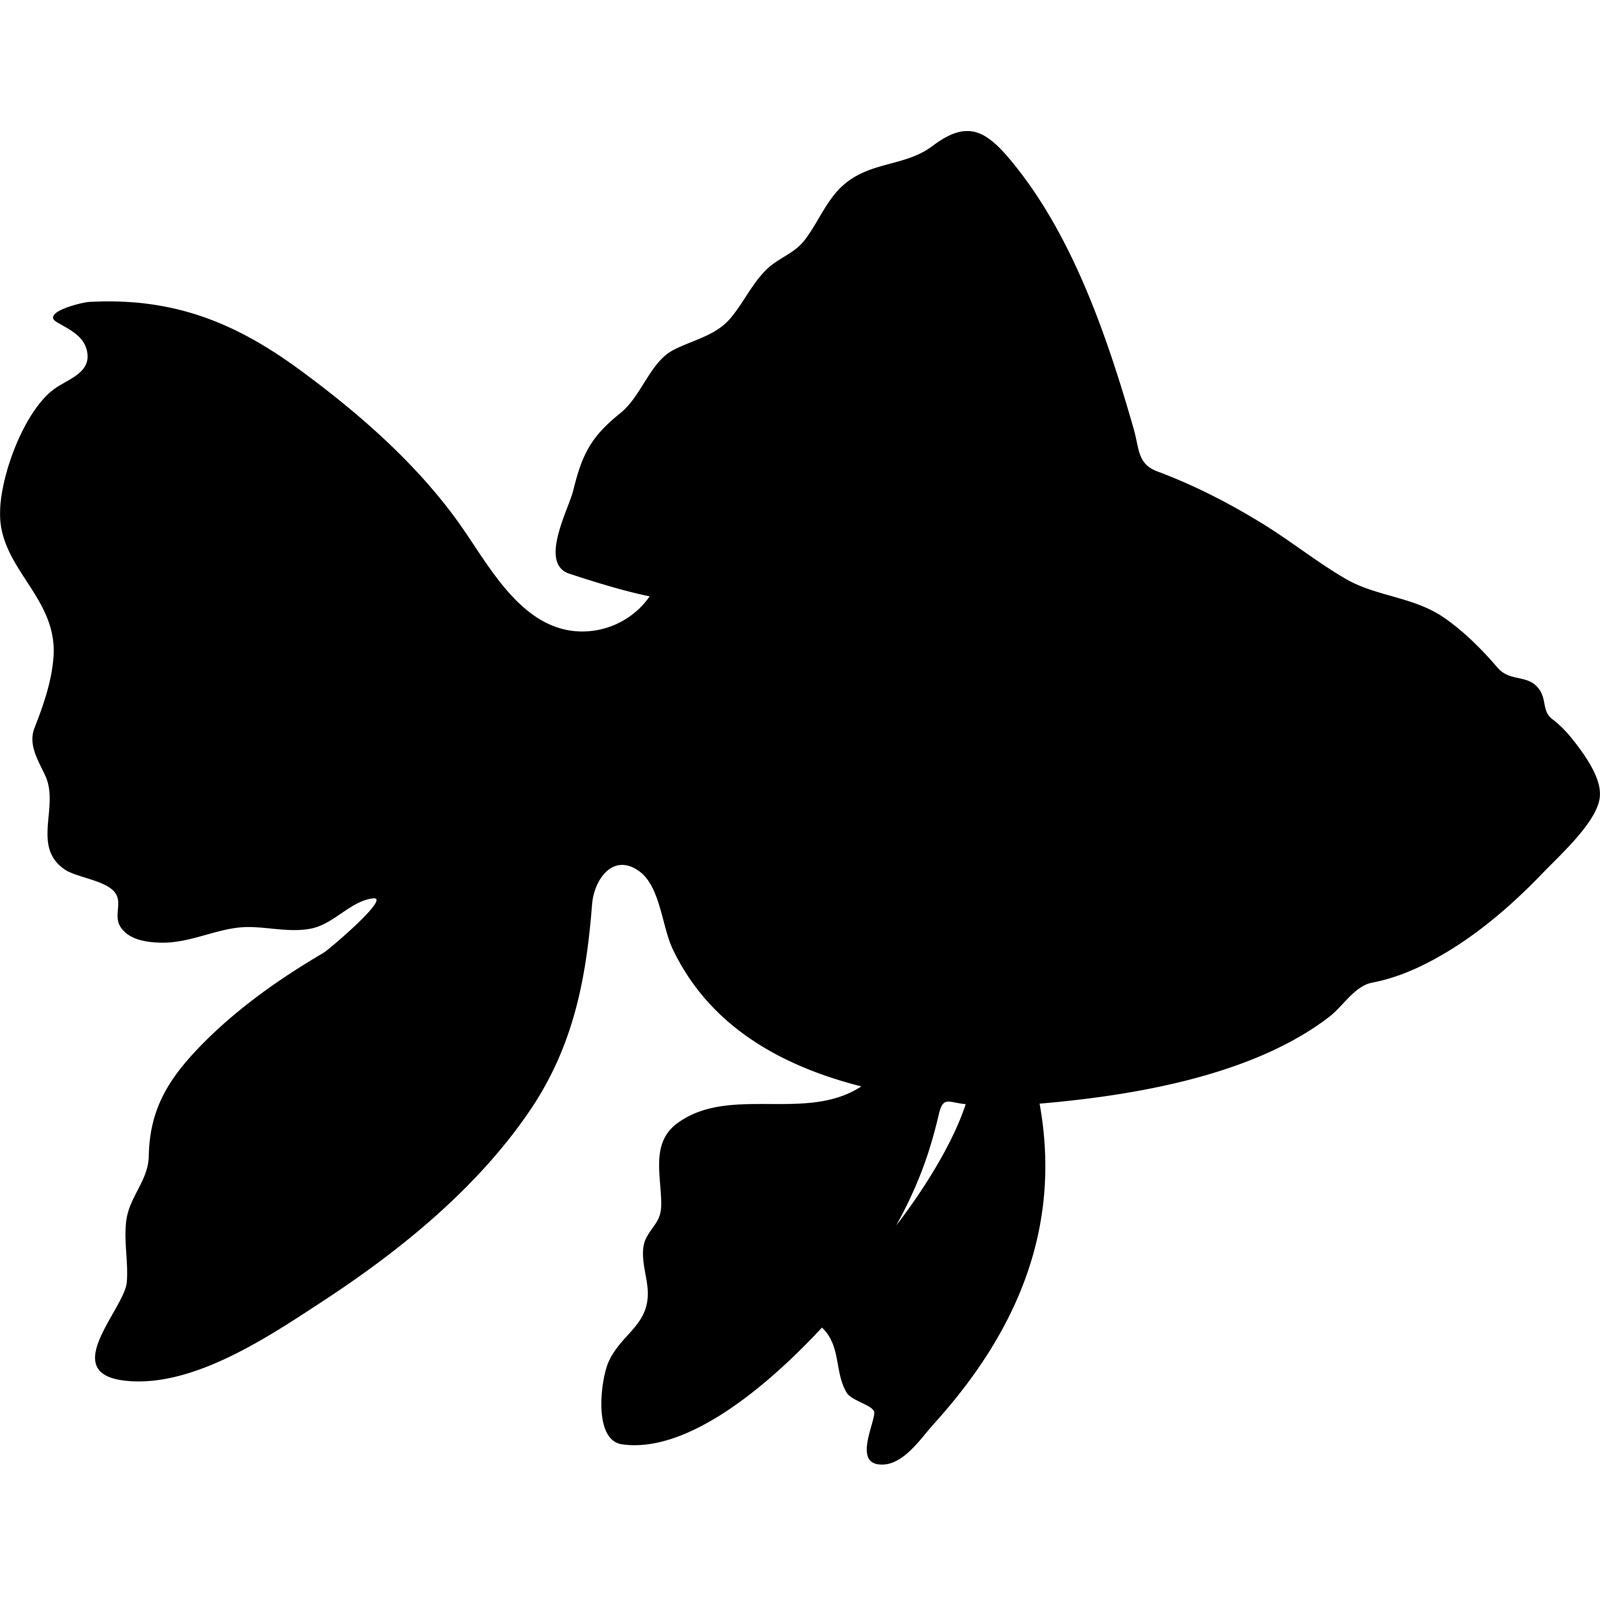 Fishing Boat Silhouette Drawing Free Image